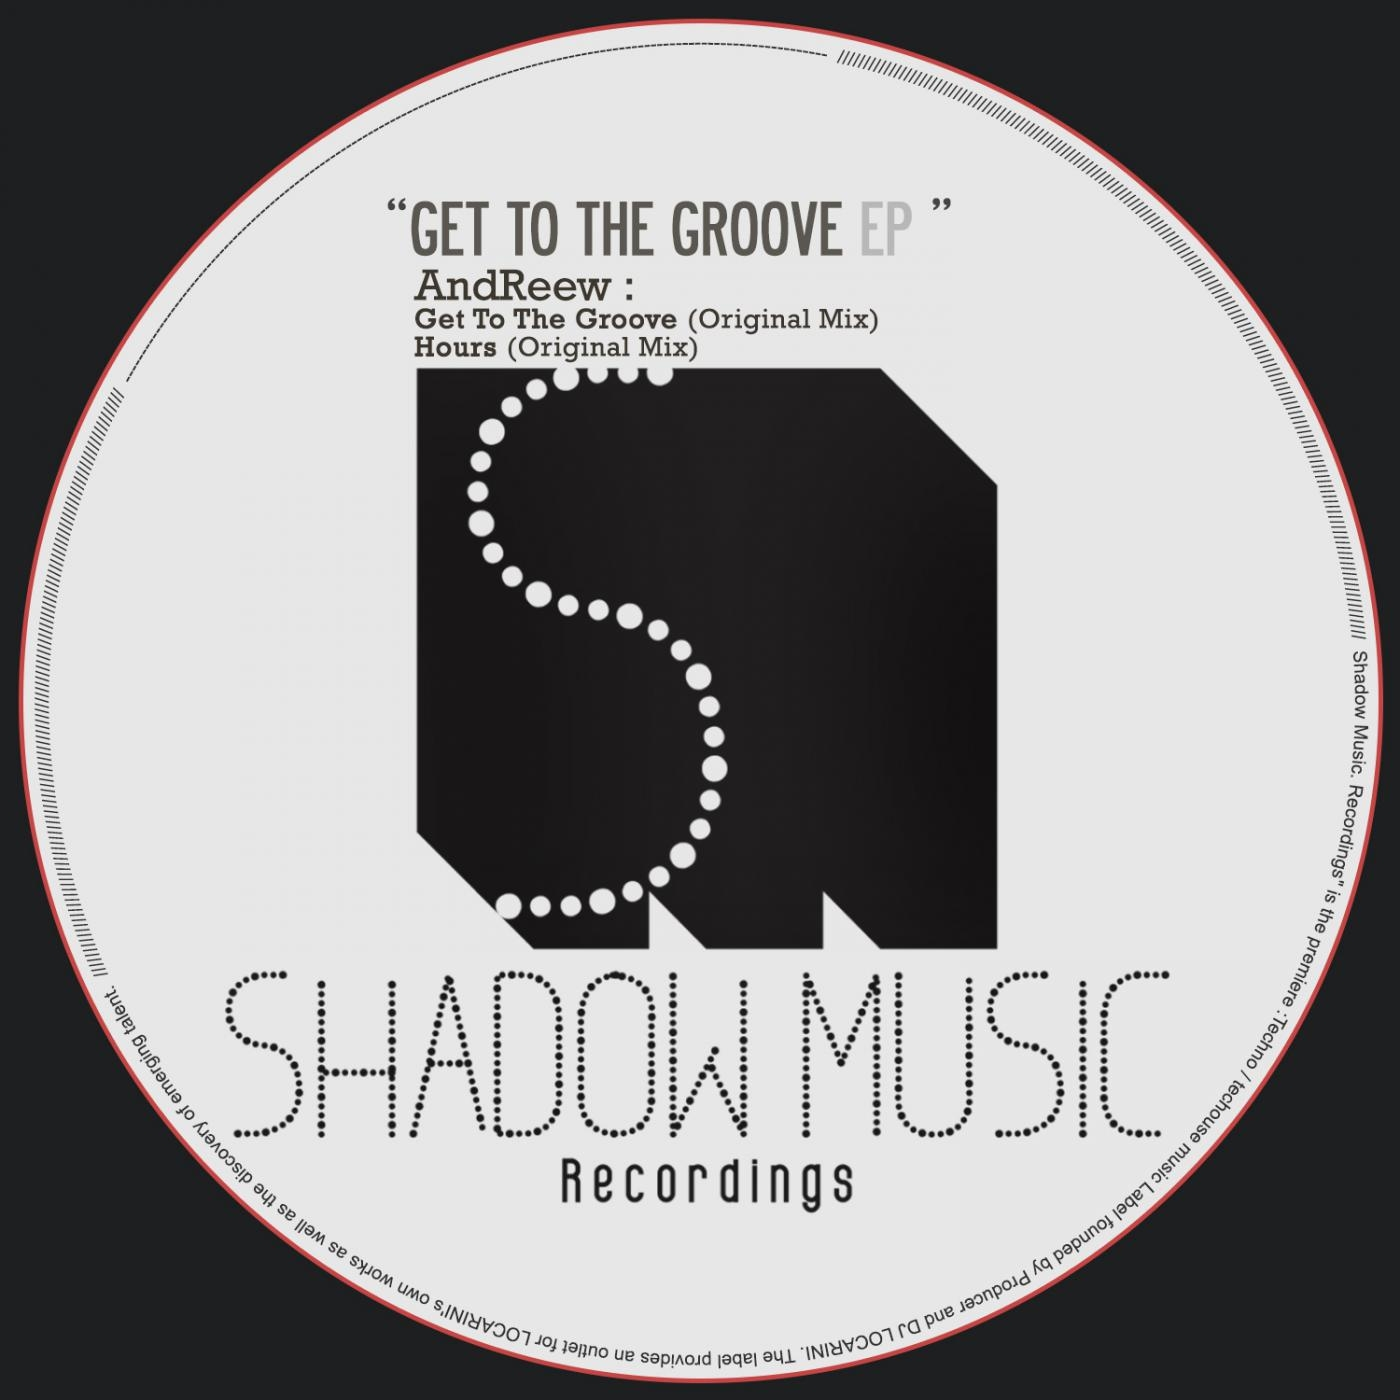 AndReew - Get To The Groove (Original mix)